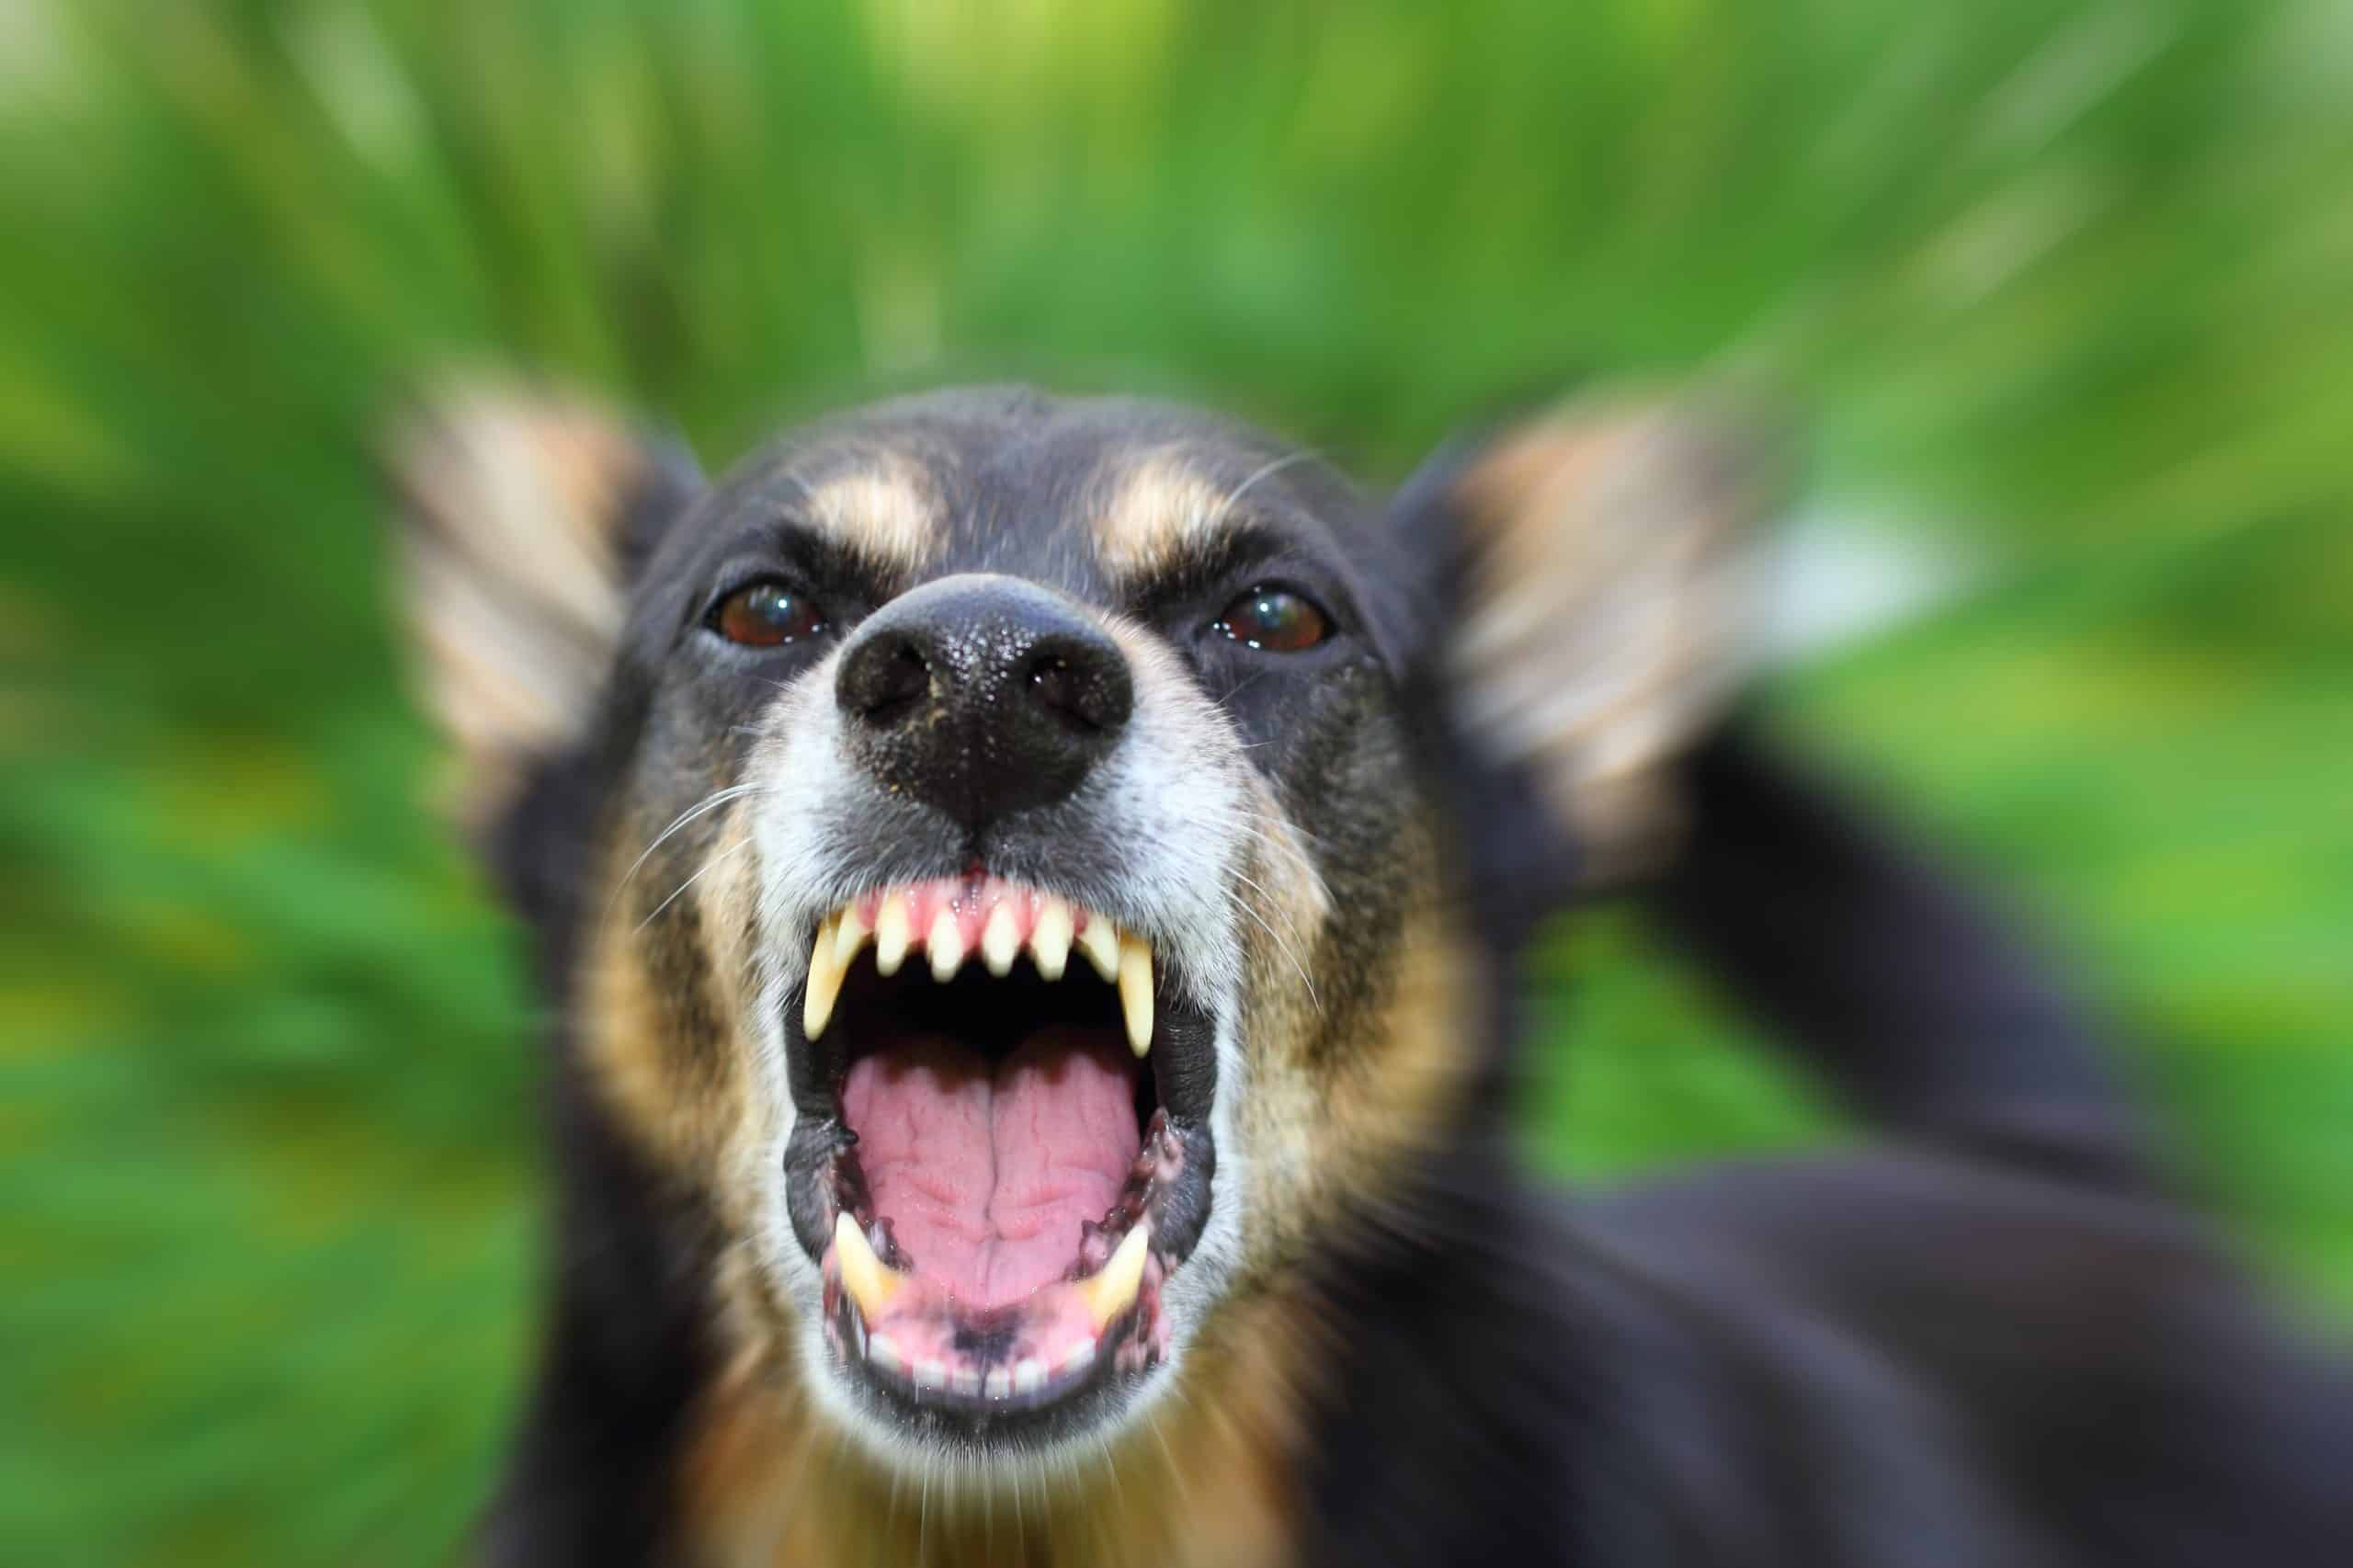 Photo illustration of an aggressive dog. When a dog becomes aggressive, one of the first things you'll notice is that they become very still and rigid. They may also growl, snarl, show their teeth, lunge, or bite.